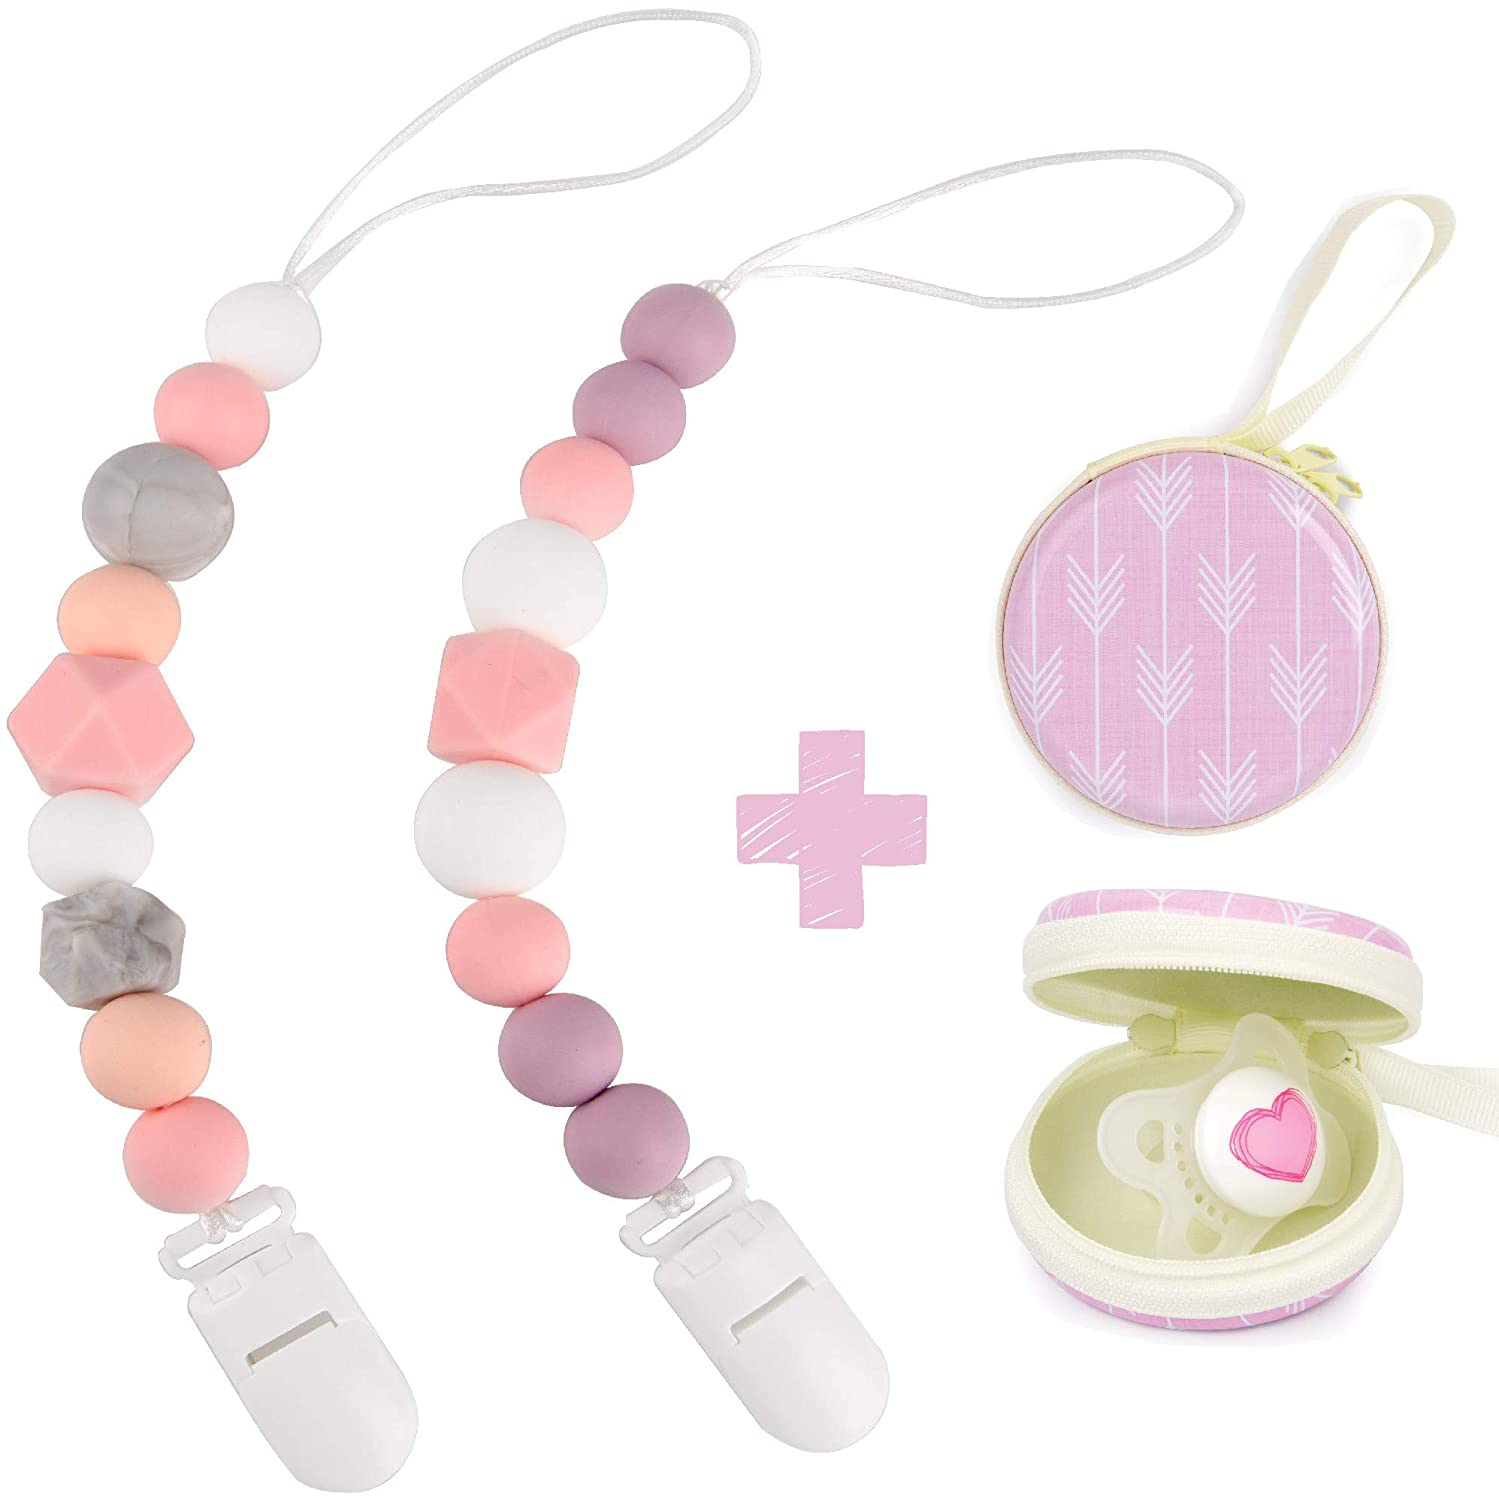 Green /& Pink POPLOPP Silicone Pacifier Clip for Baby Girls 4 Pack Paci Clip Teething Beads Soothie Binky Holder Teether Toys Birthday Christmas Shower Gift